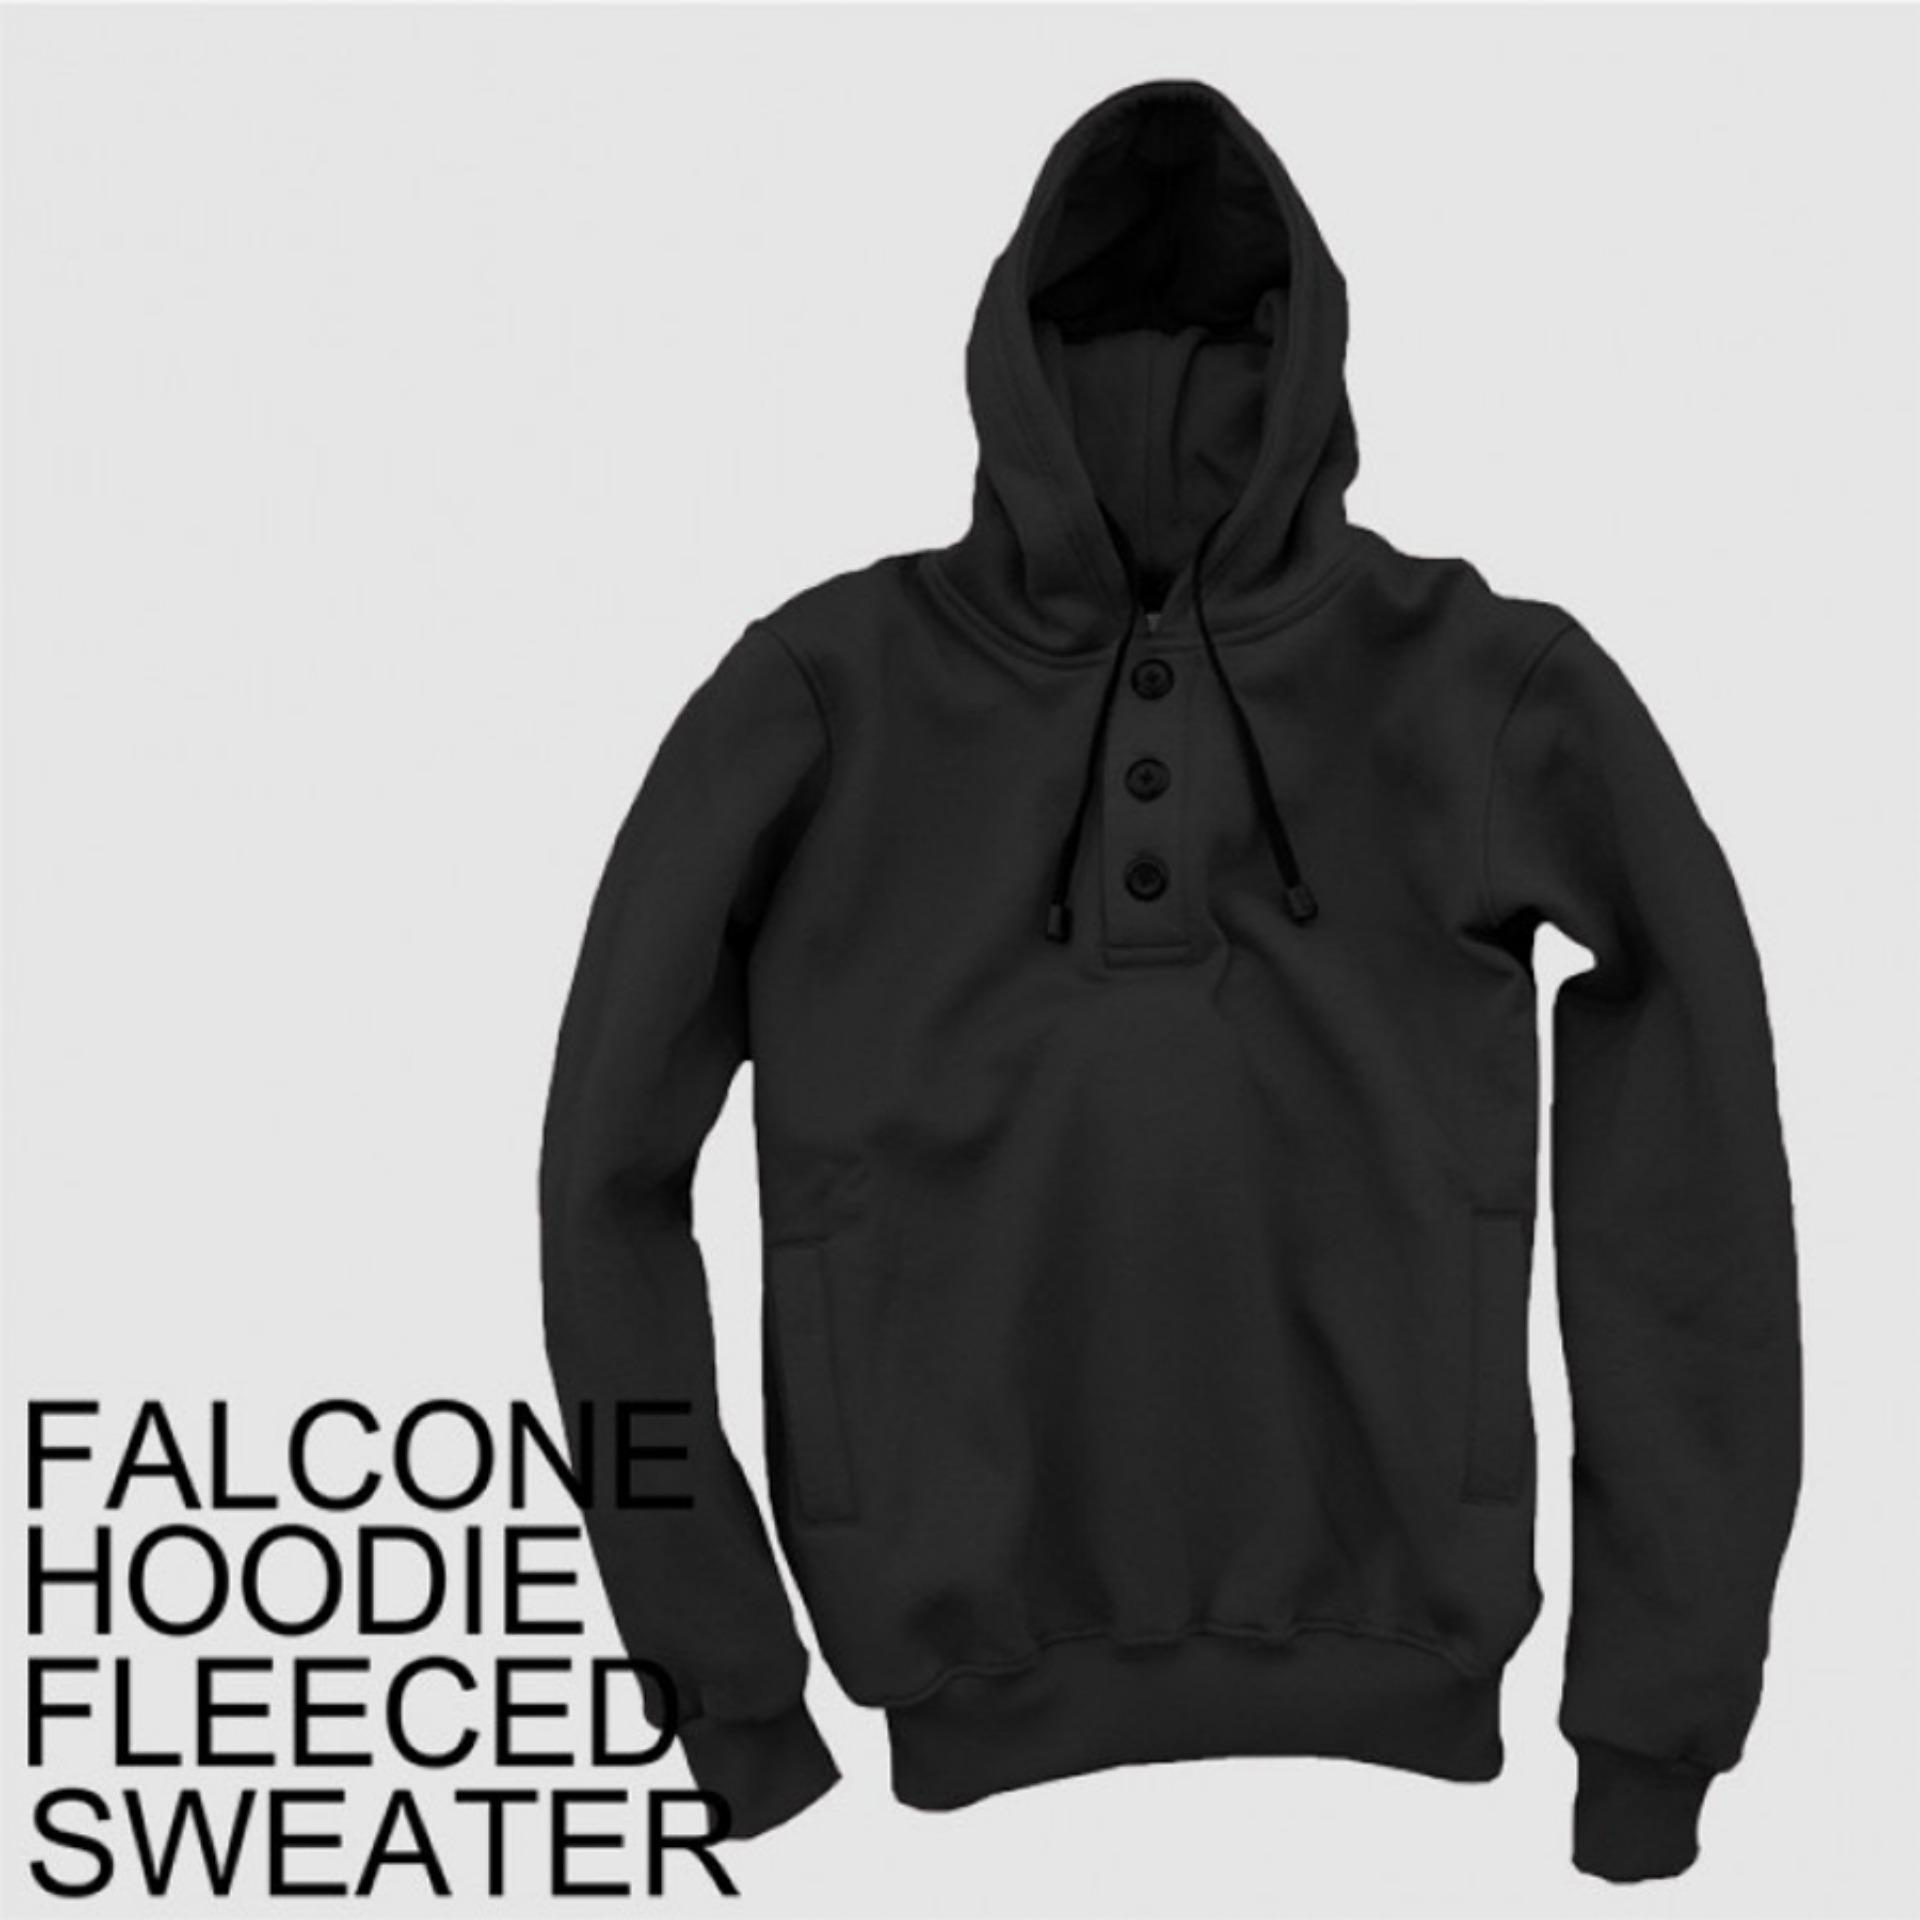 Harga Dections Jaket Sweater Polos Hoodie Jumper Falcone Hitam Dections Baru